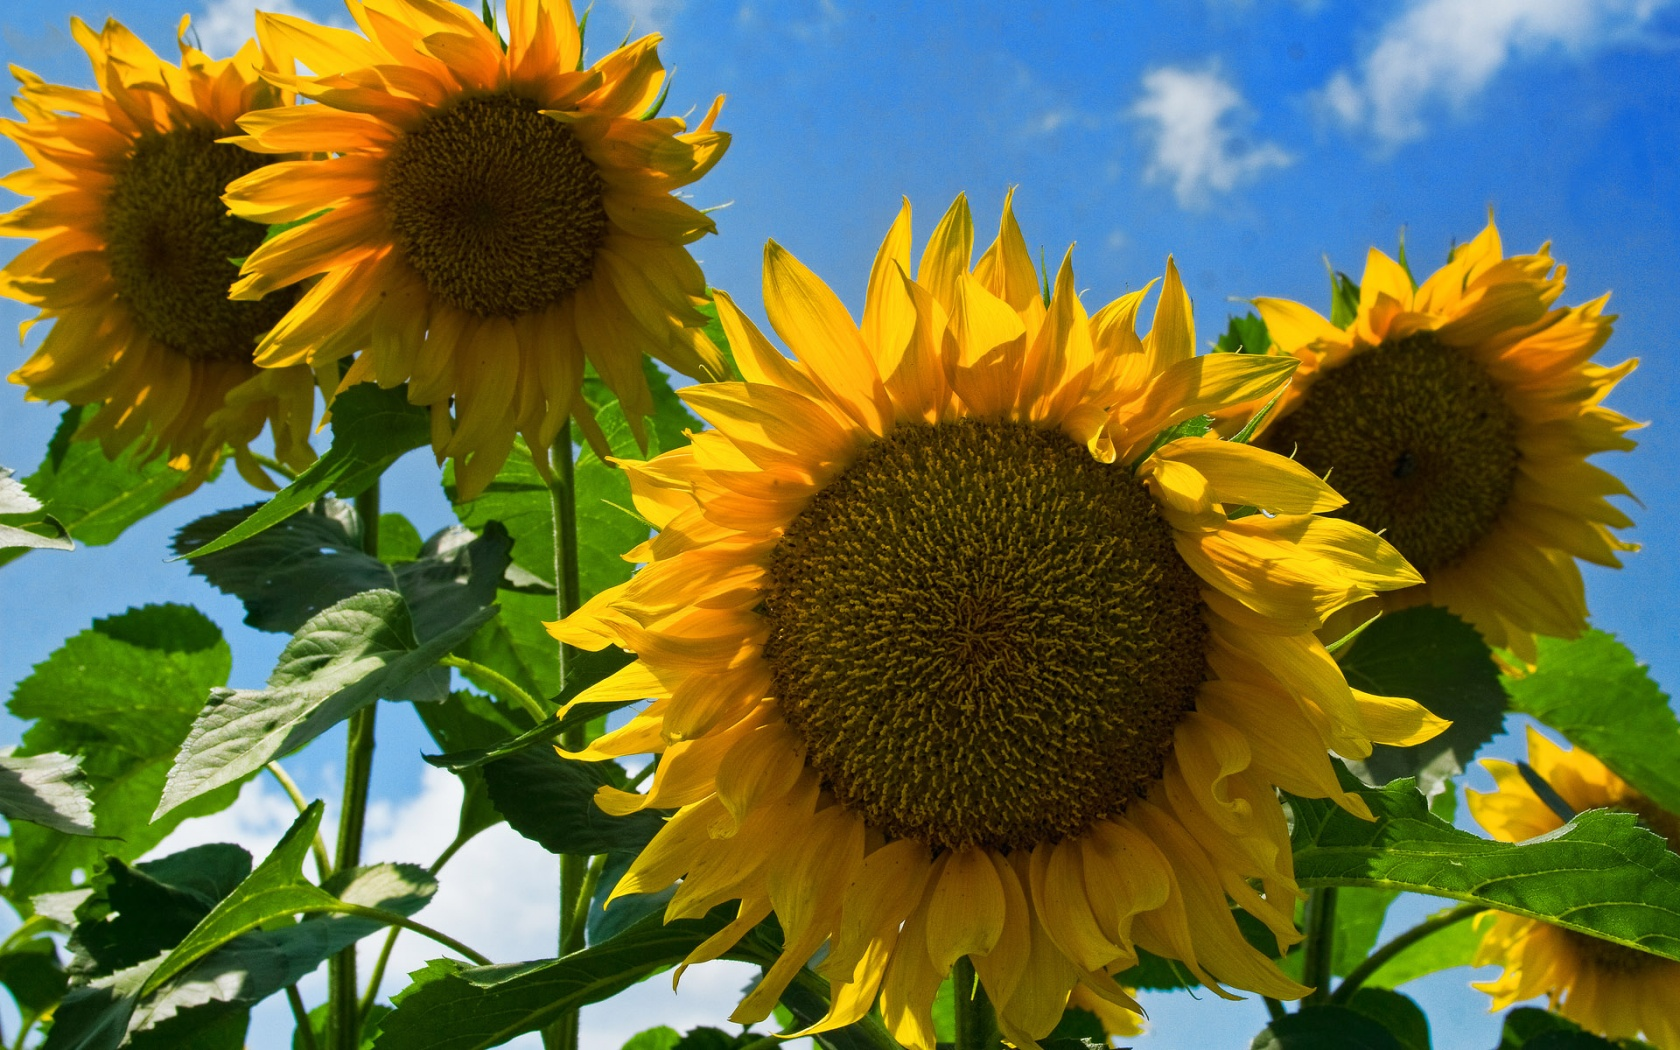 Free Download Sunflowers 1680x1050 Wallpaper Download Page 662407 1680x1050 For Your Desktop Mobile Tablet Explore 48 Laptop Wallpapers Free Download Automatically Changing Wallpapers Automatically Automatic Wallpaper Changer Windows 10